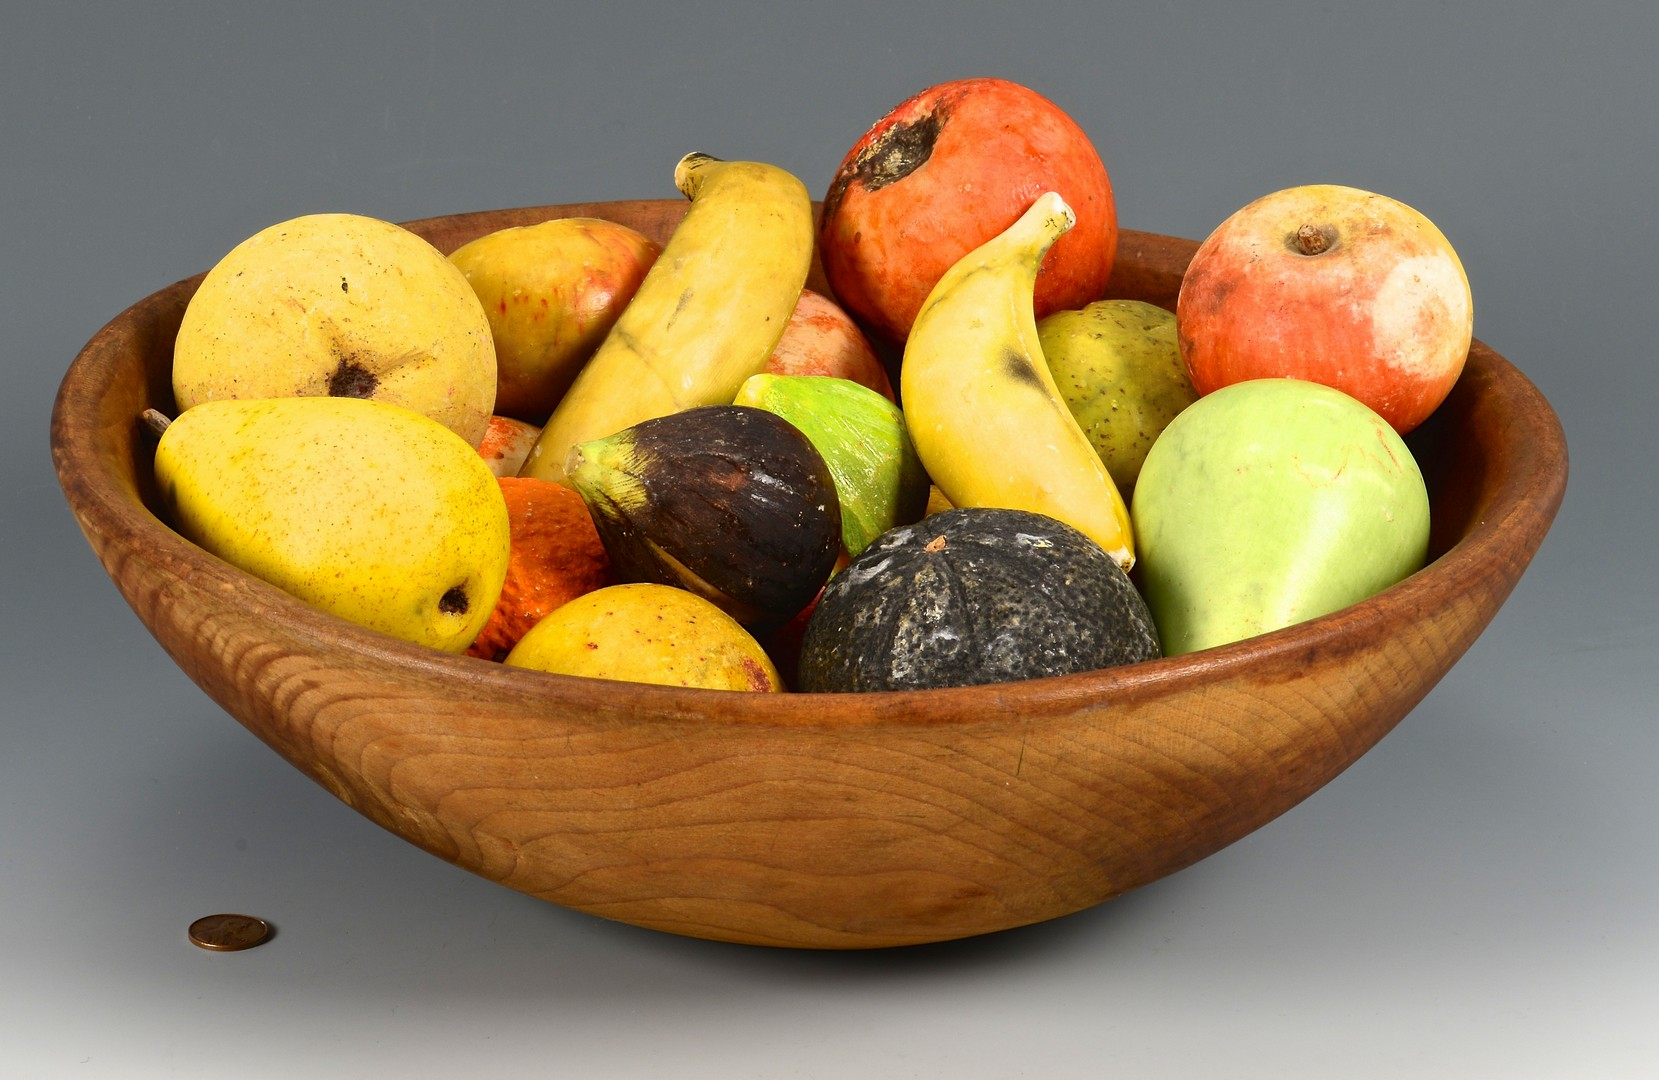 Lot 254: 20 pcs Stone Fruit w/ Wooden Bowl